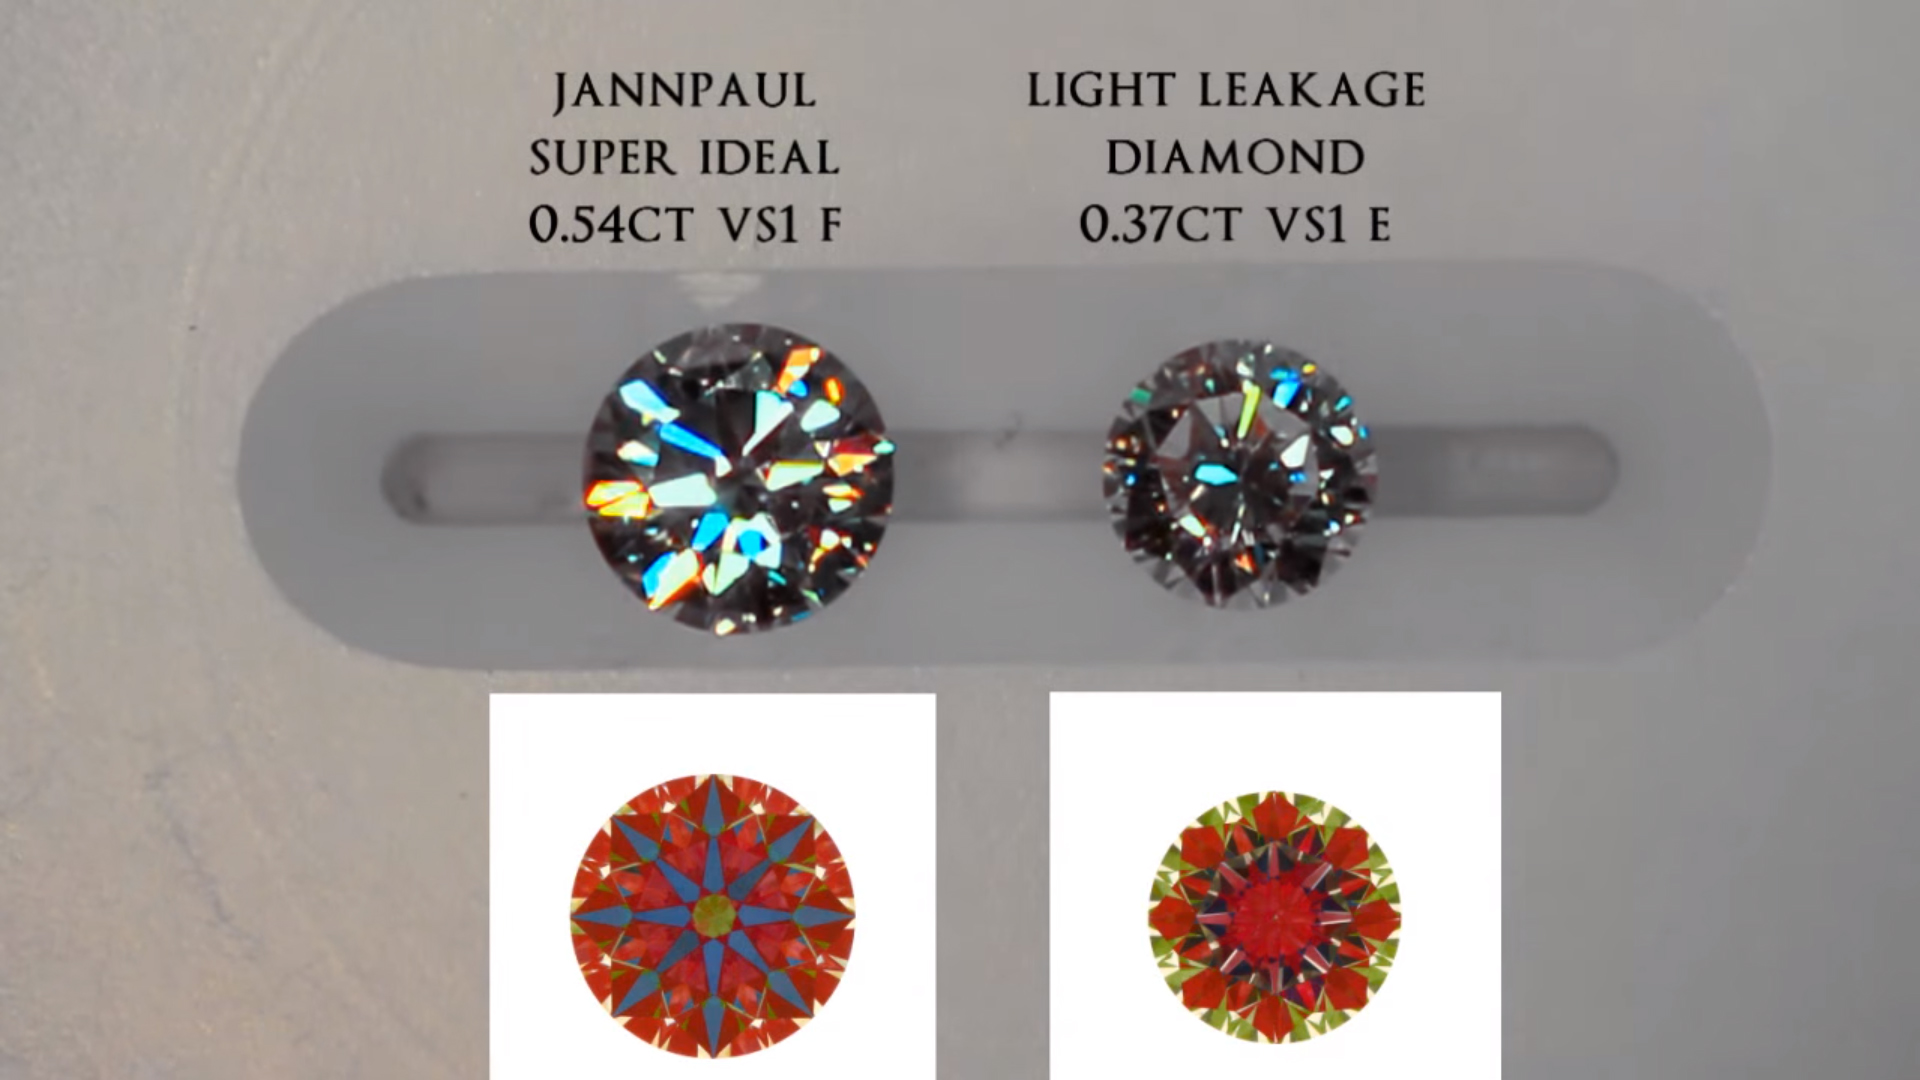 JannPaul Education: Light Leakage in a 0.3carat Diamond